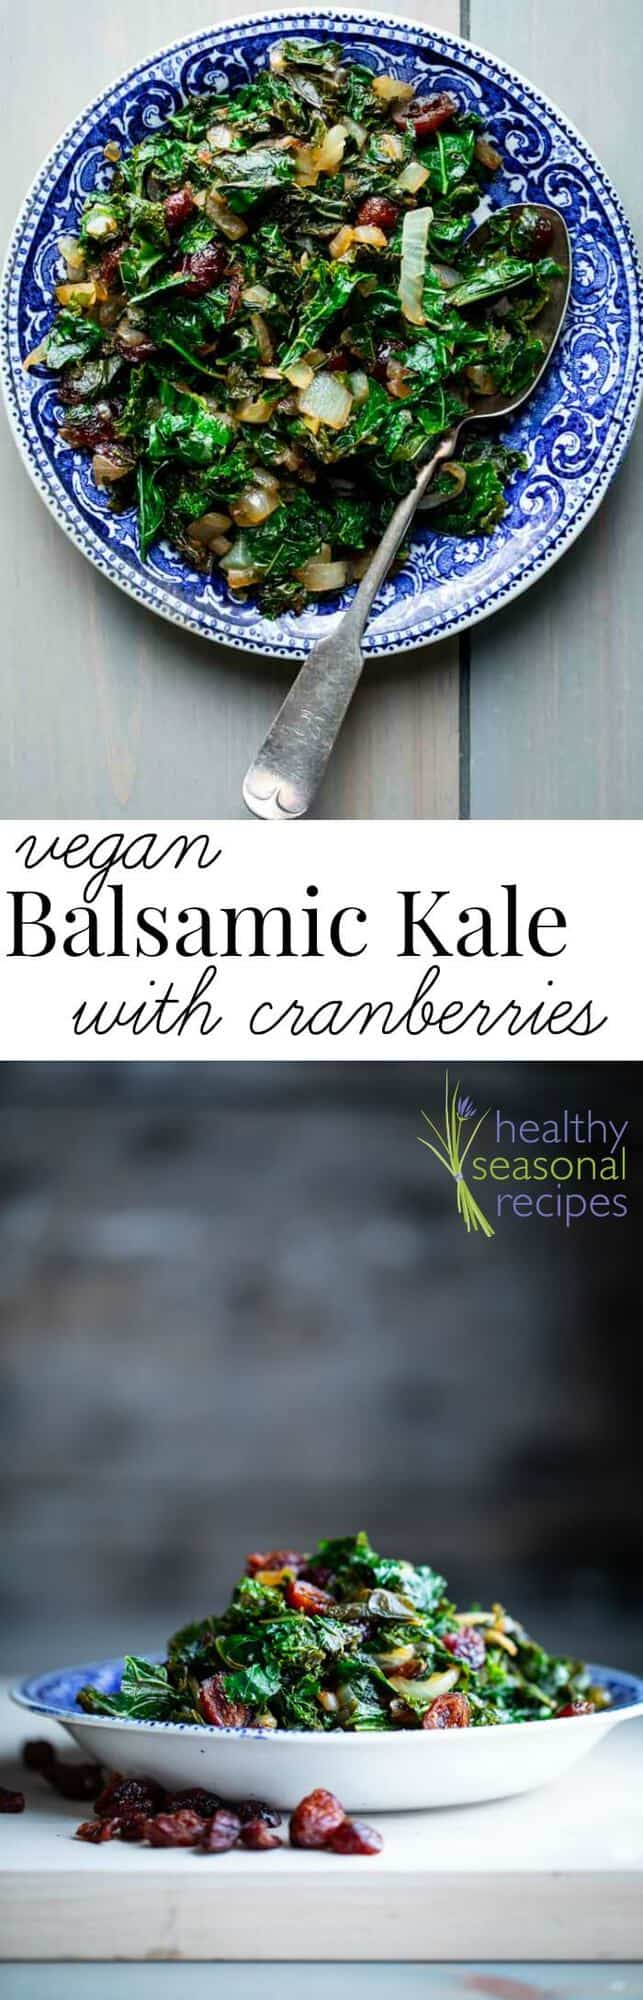 Vegan Kale with Balsamic Vinegar {Paleo} | This simple side dish balances sweet and sour with dried cranberries and a splash of balsamic vinegar. Try it with grilled meat, baked chicken or as part of a healthy vegetarian weeknight meal. #cleaneating #vegan #glutenfree #paleo #vegetarian #kale #easy #healthy